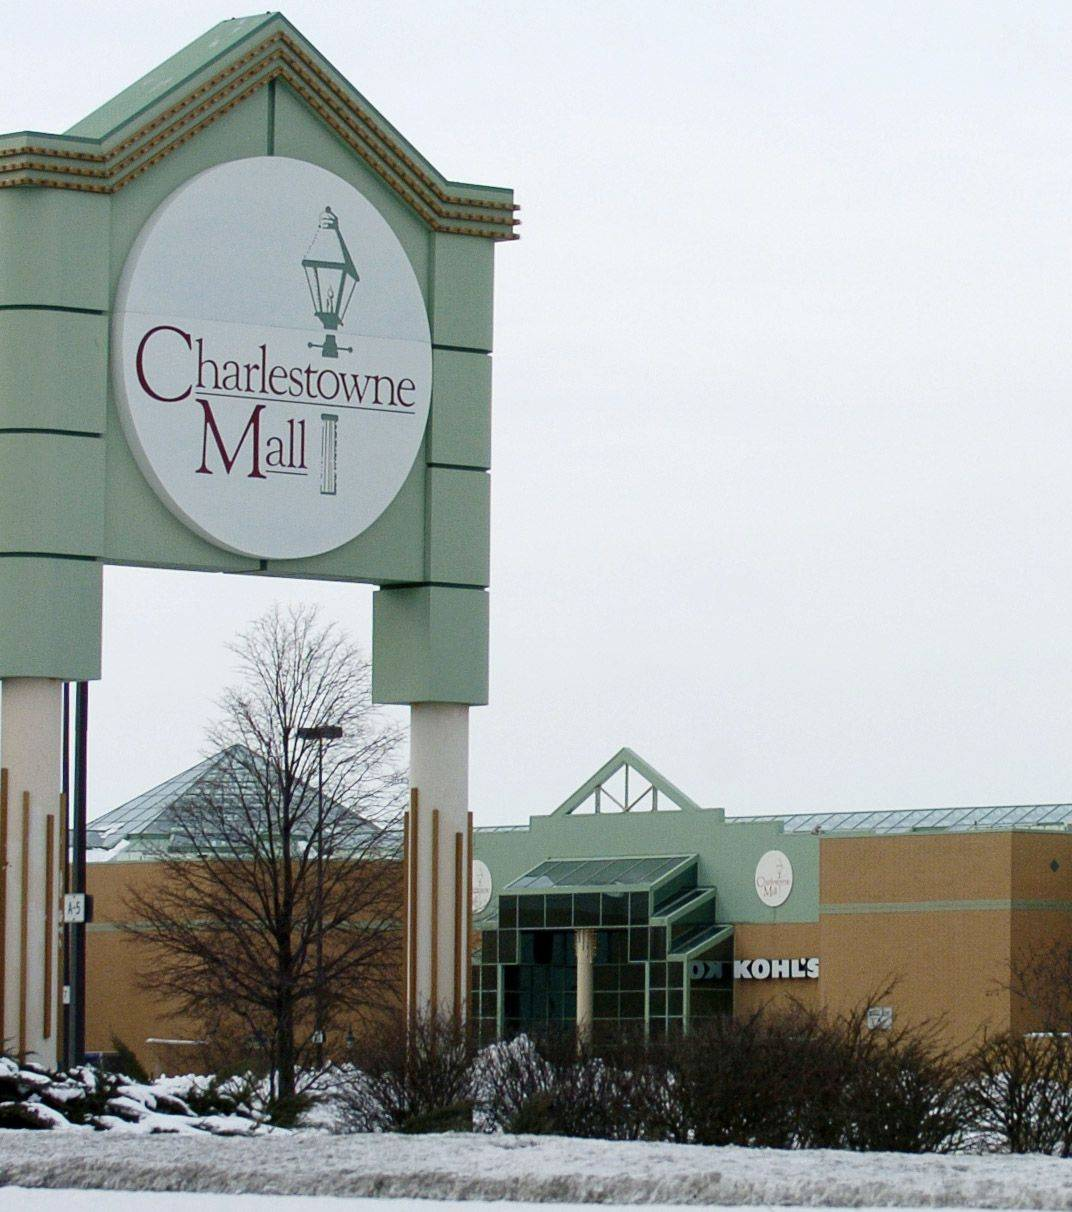 Rejuvenating Charlestowne Mall made the list of 64 things St. Charles residents told consultants they want to see in town.